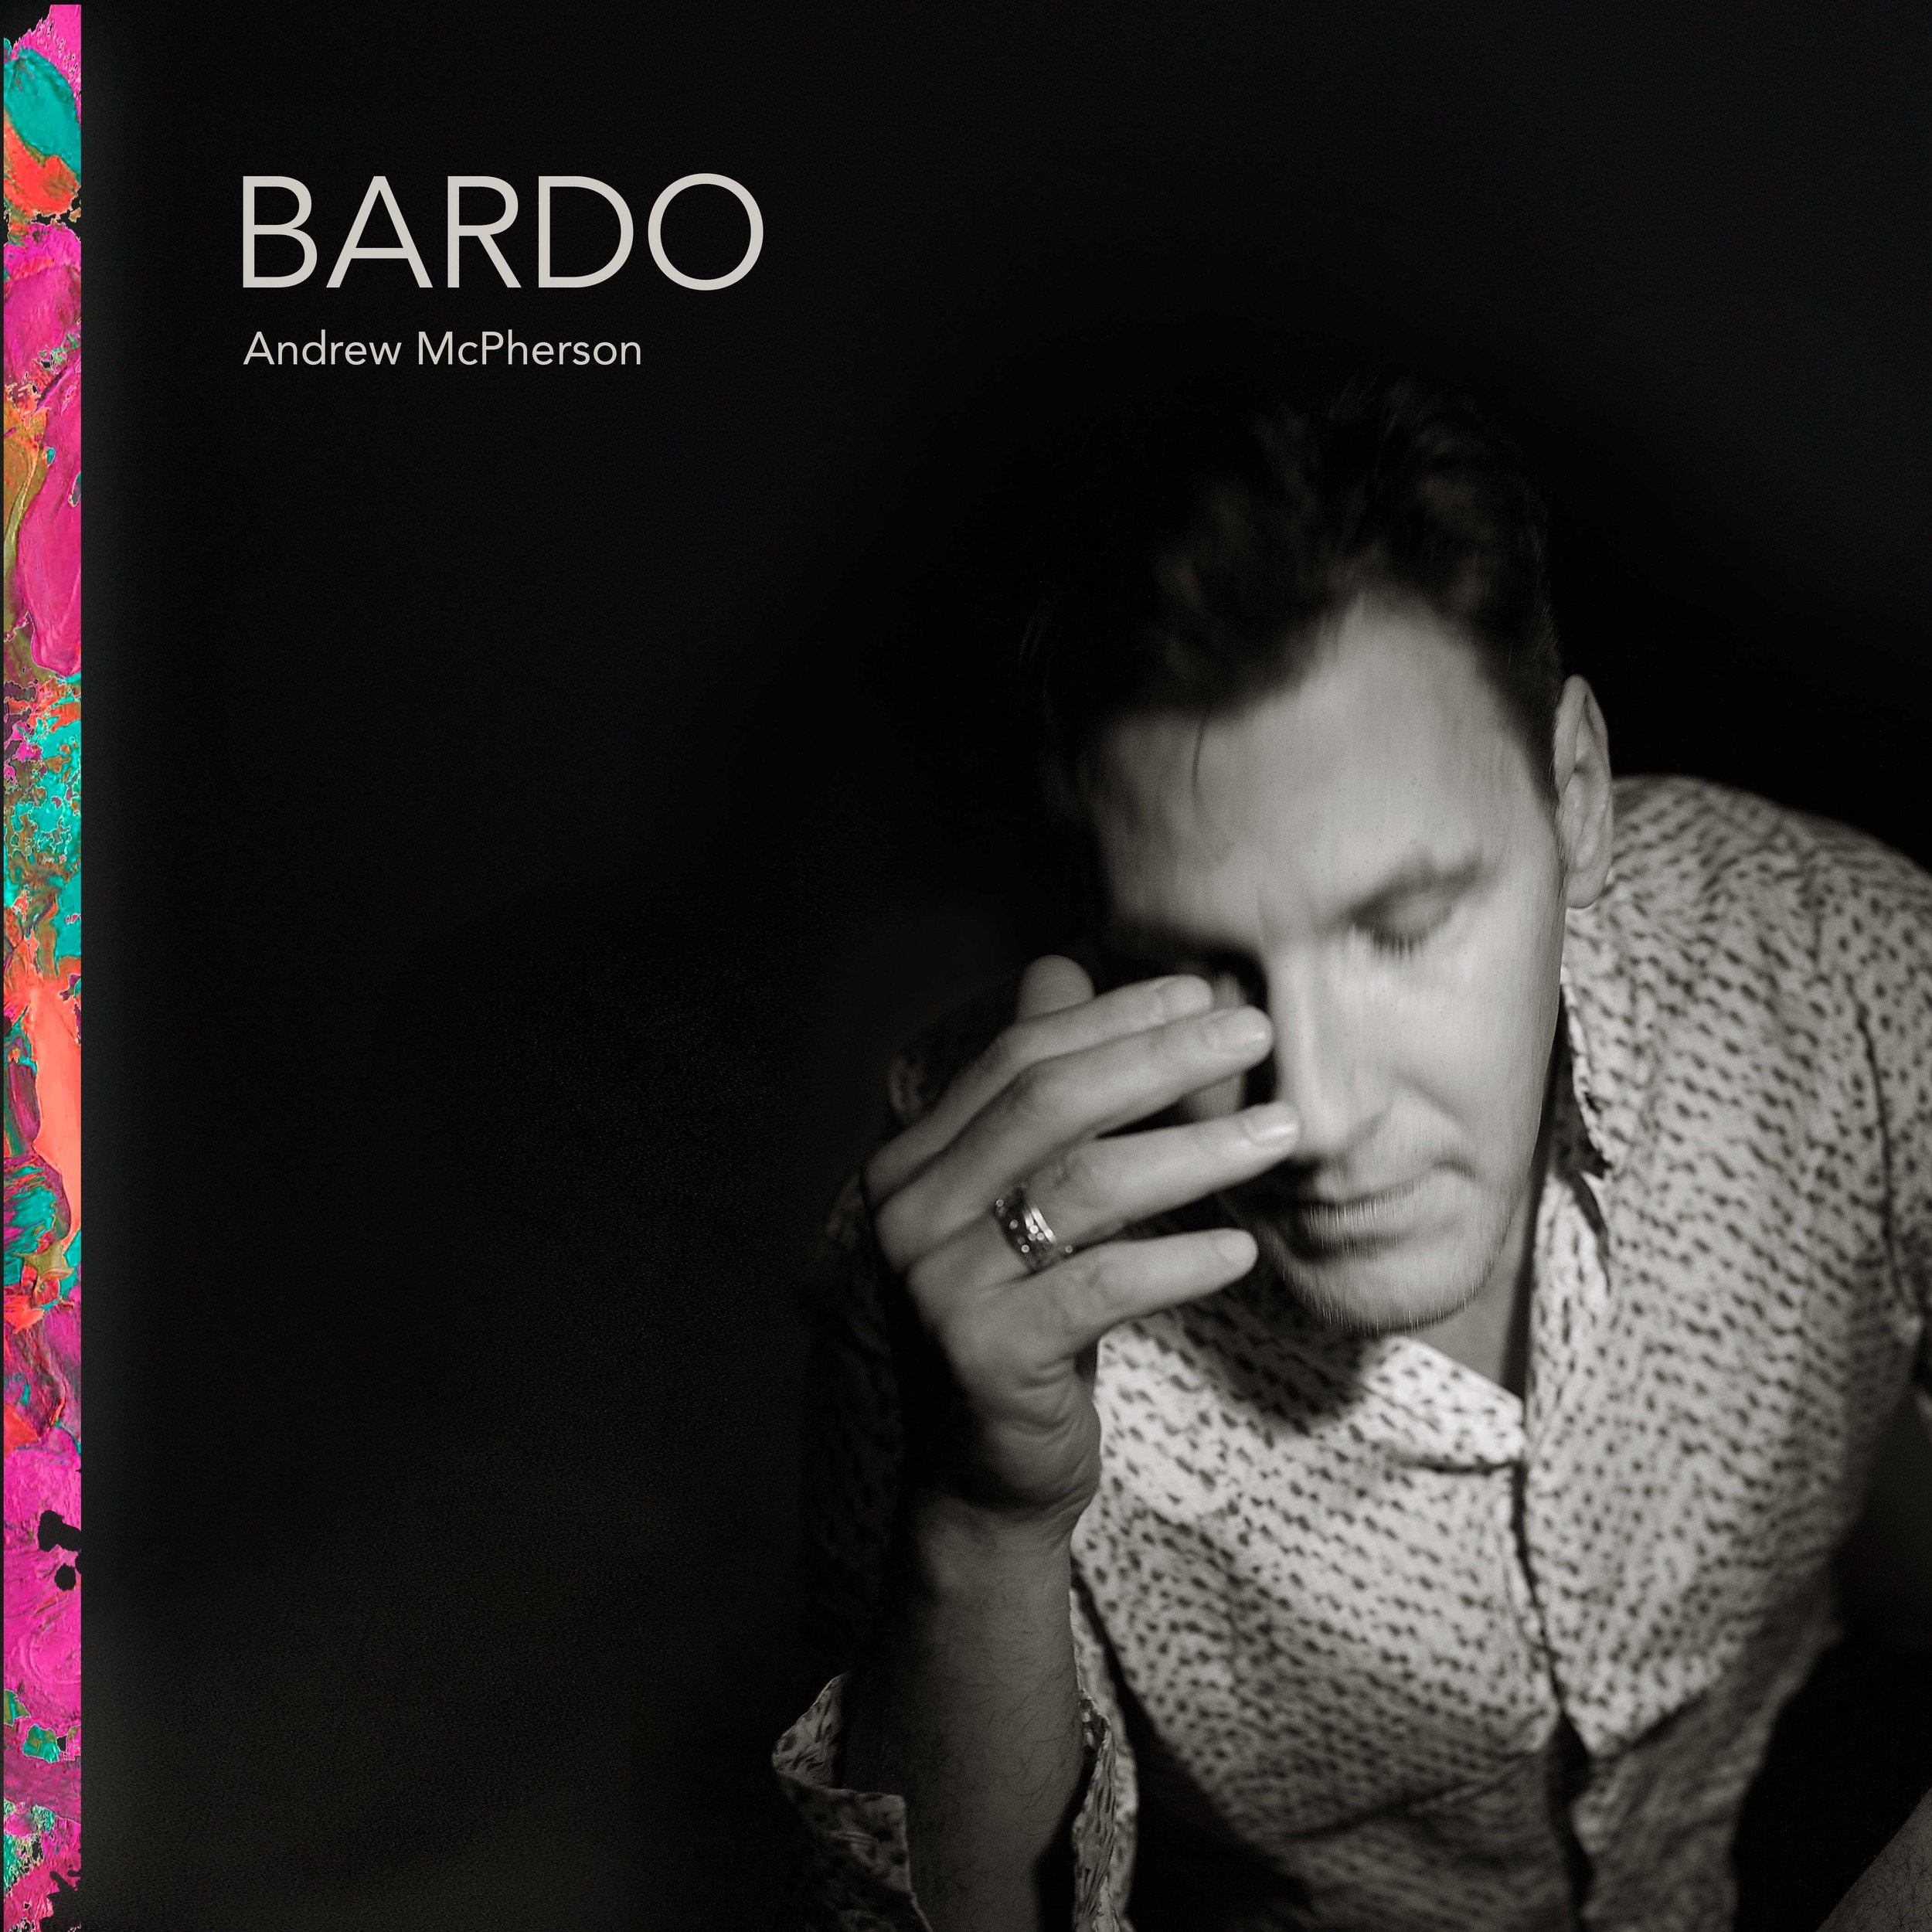 newbardo3cover-copy.jpg